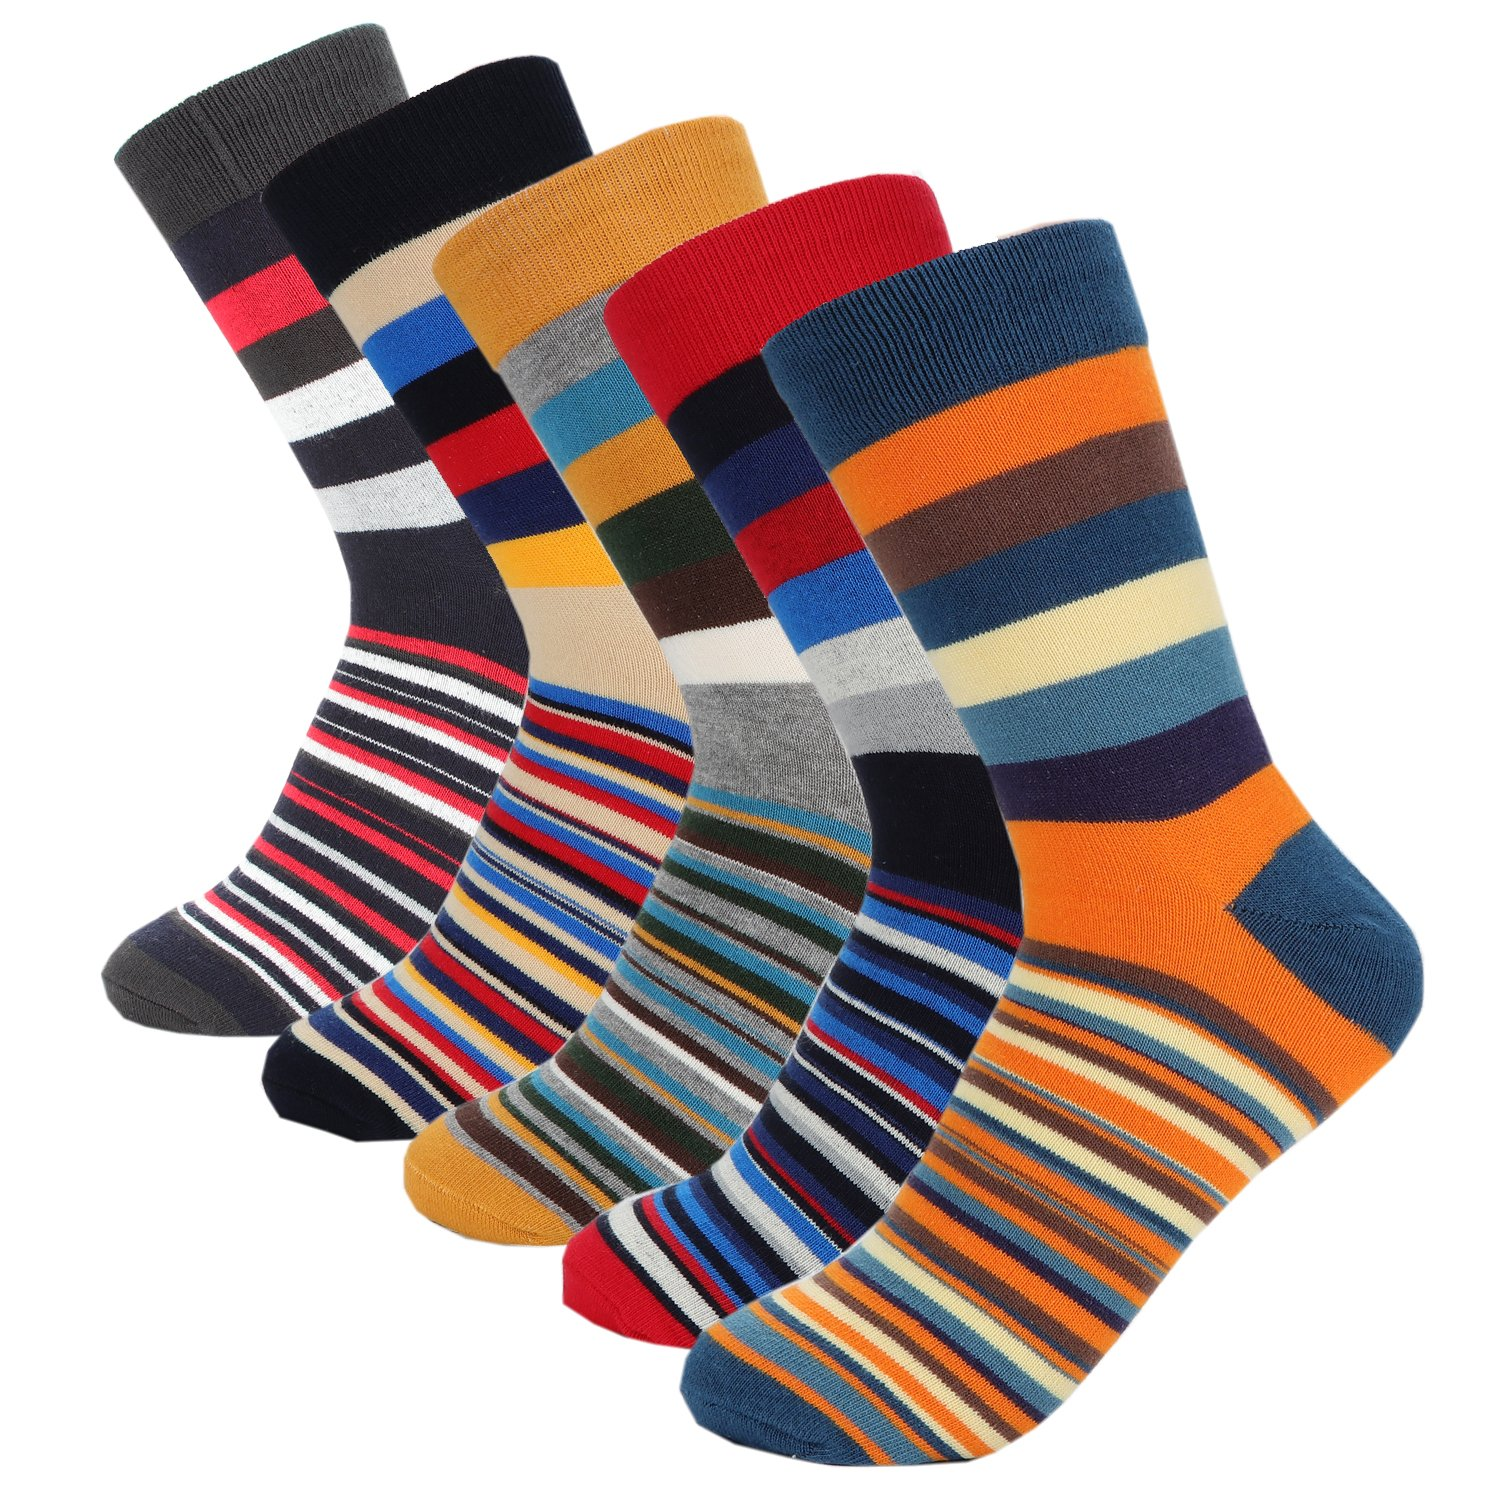 Hoyols Mens Dress Casual Socks Cotton Crew Socks 5 Color Pack (L Size)